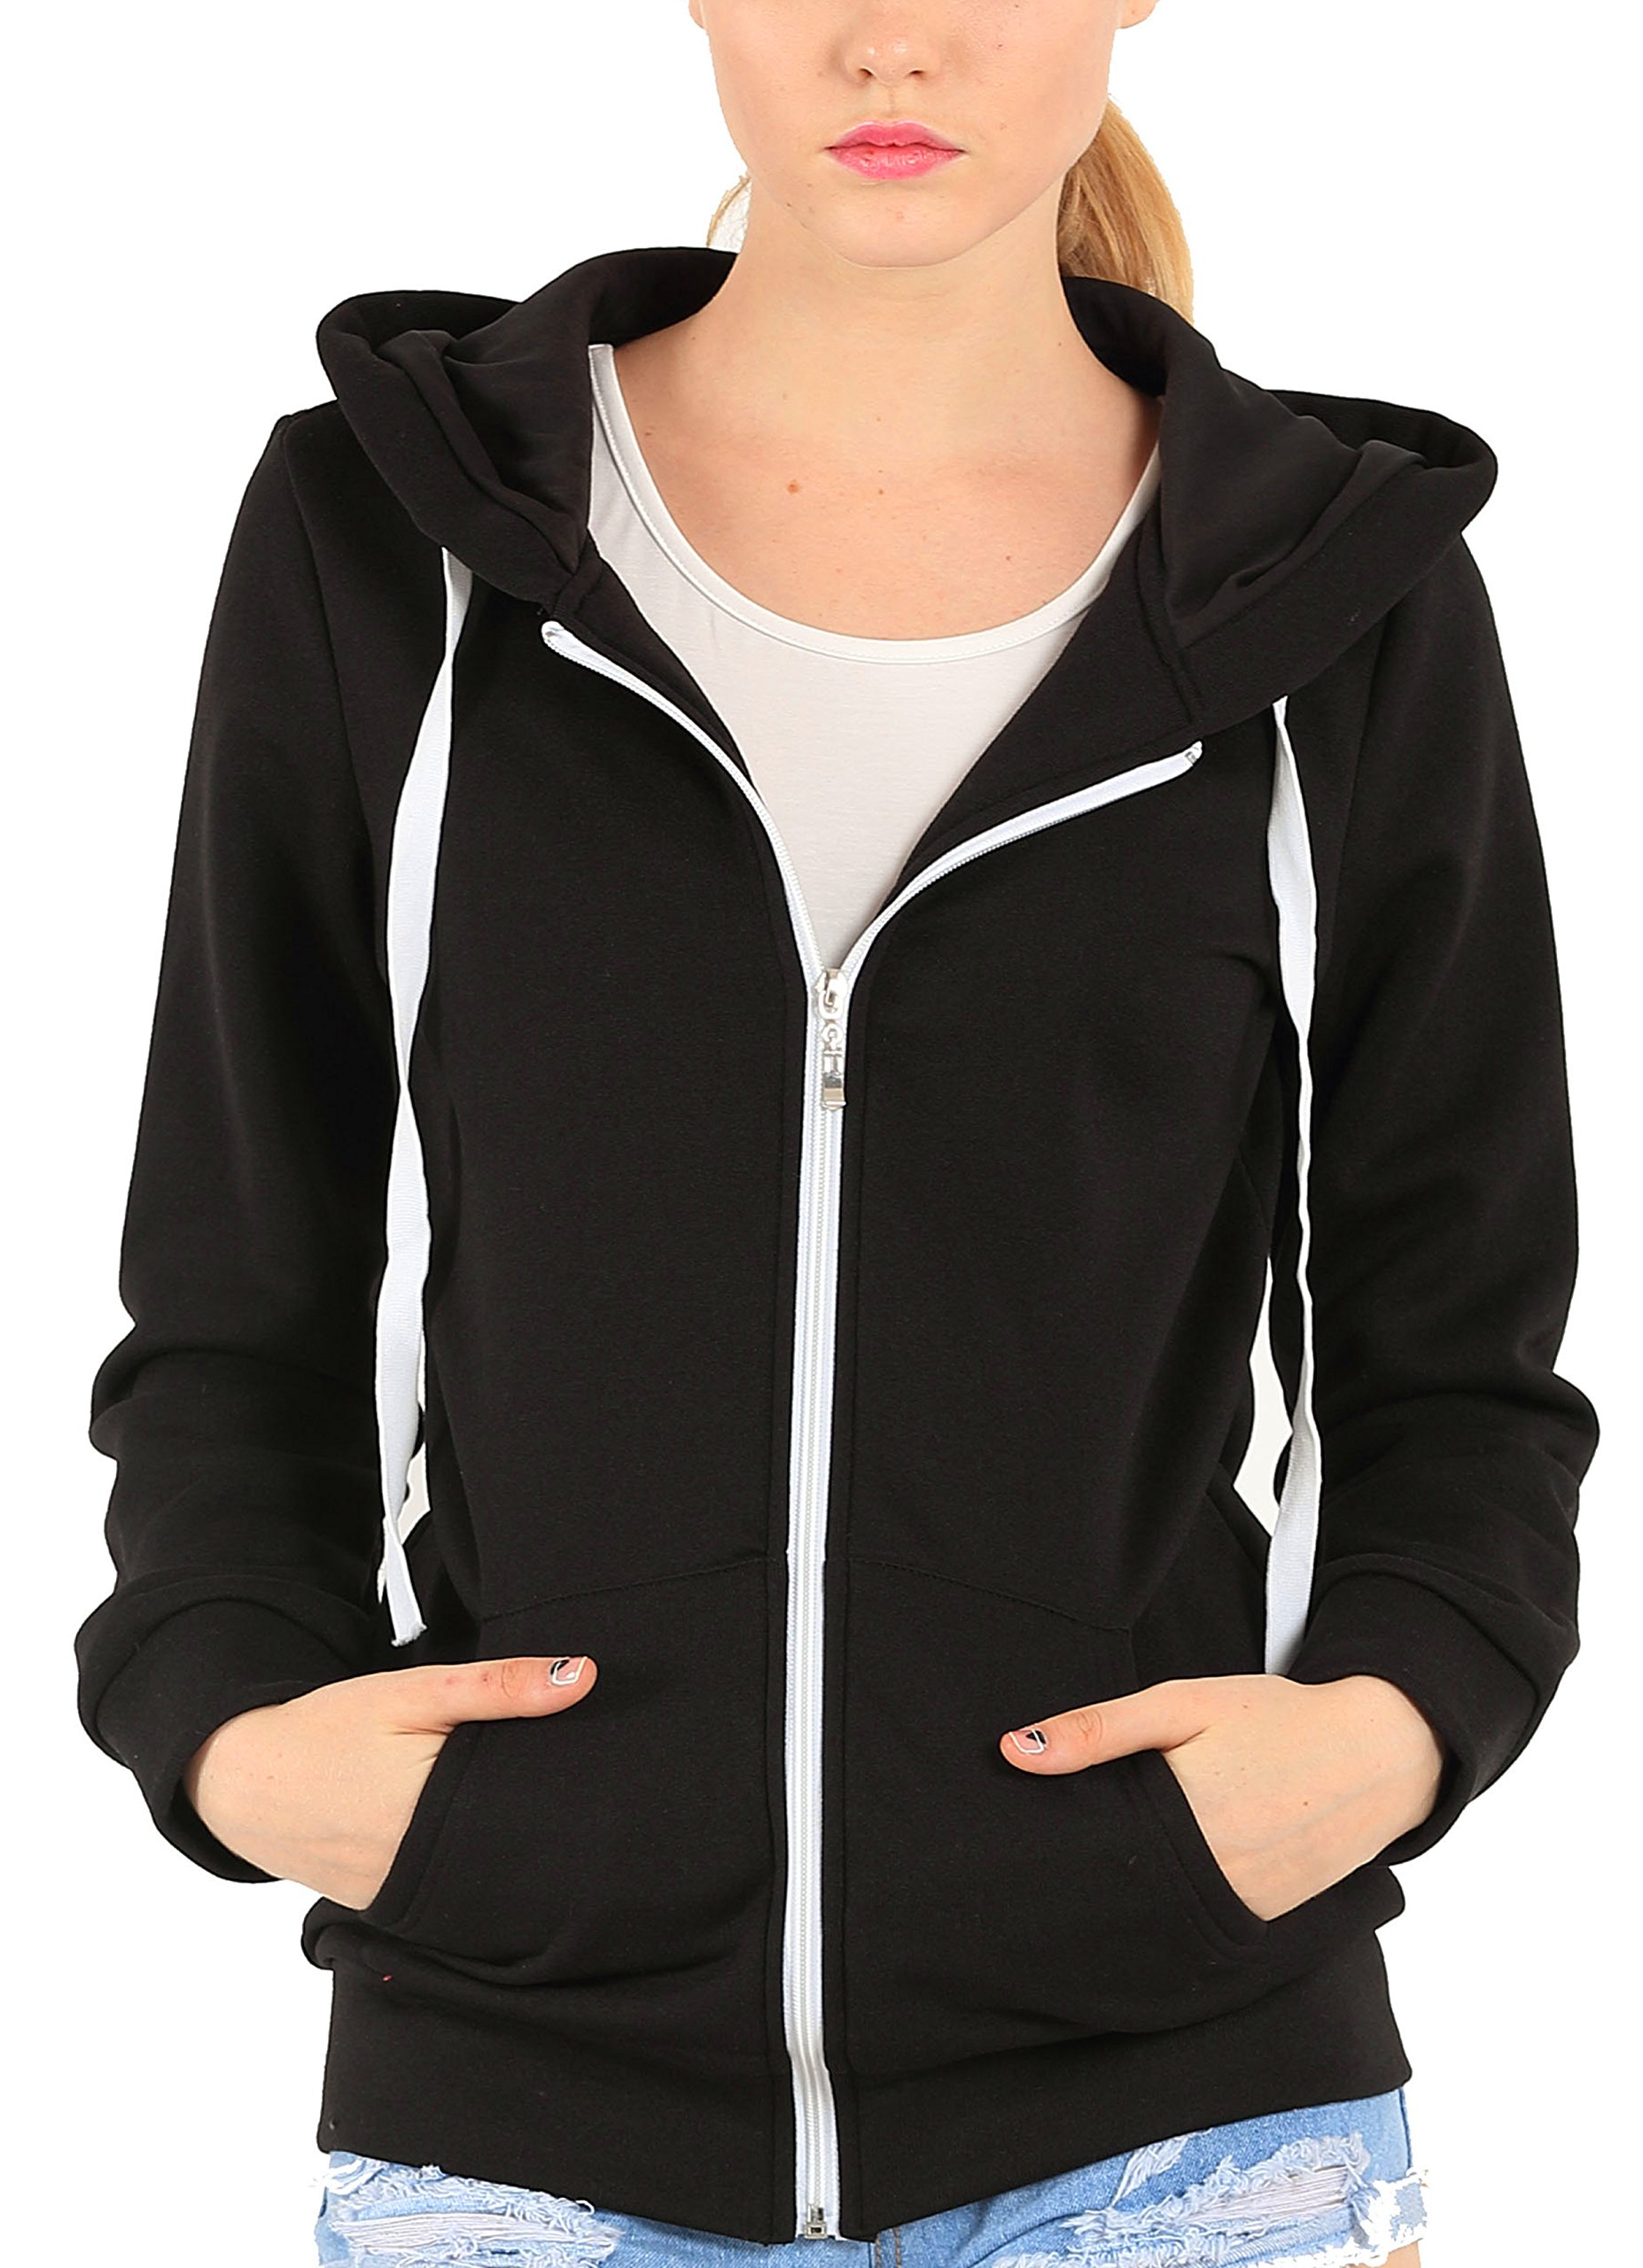 Easyhon Womens Soft Zip up Fleece Hoodie Sweater Jacket (Large, Black)